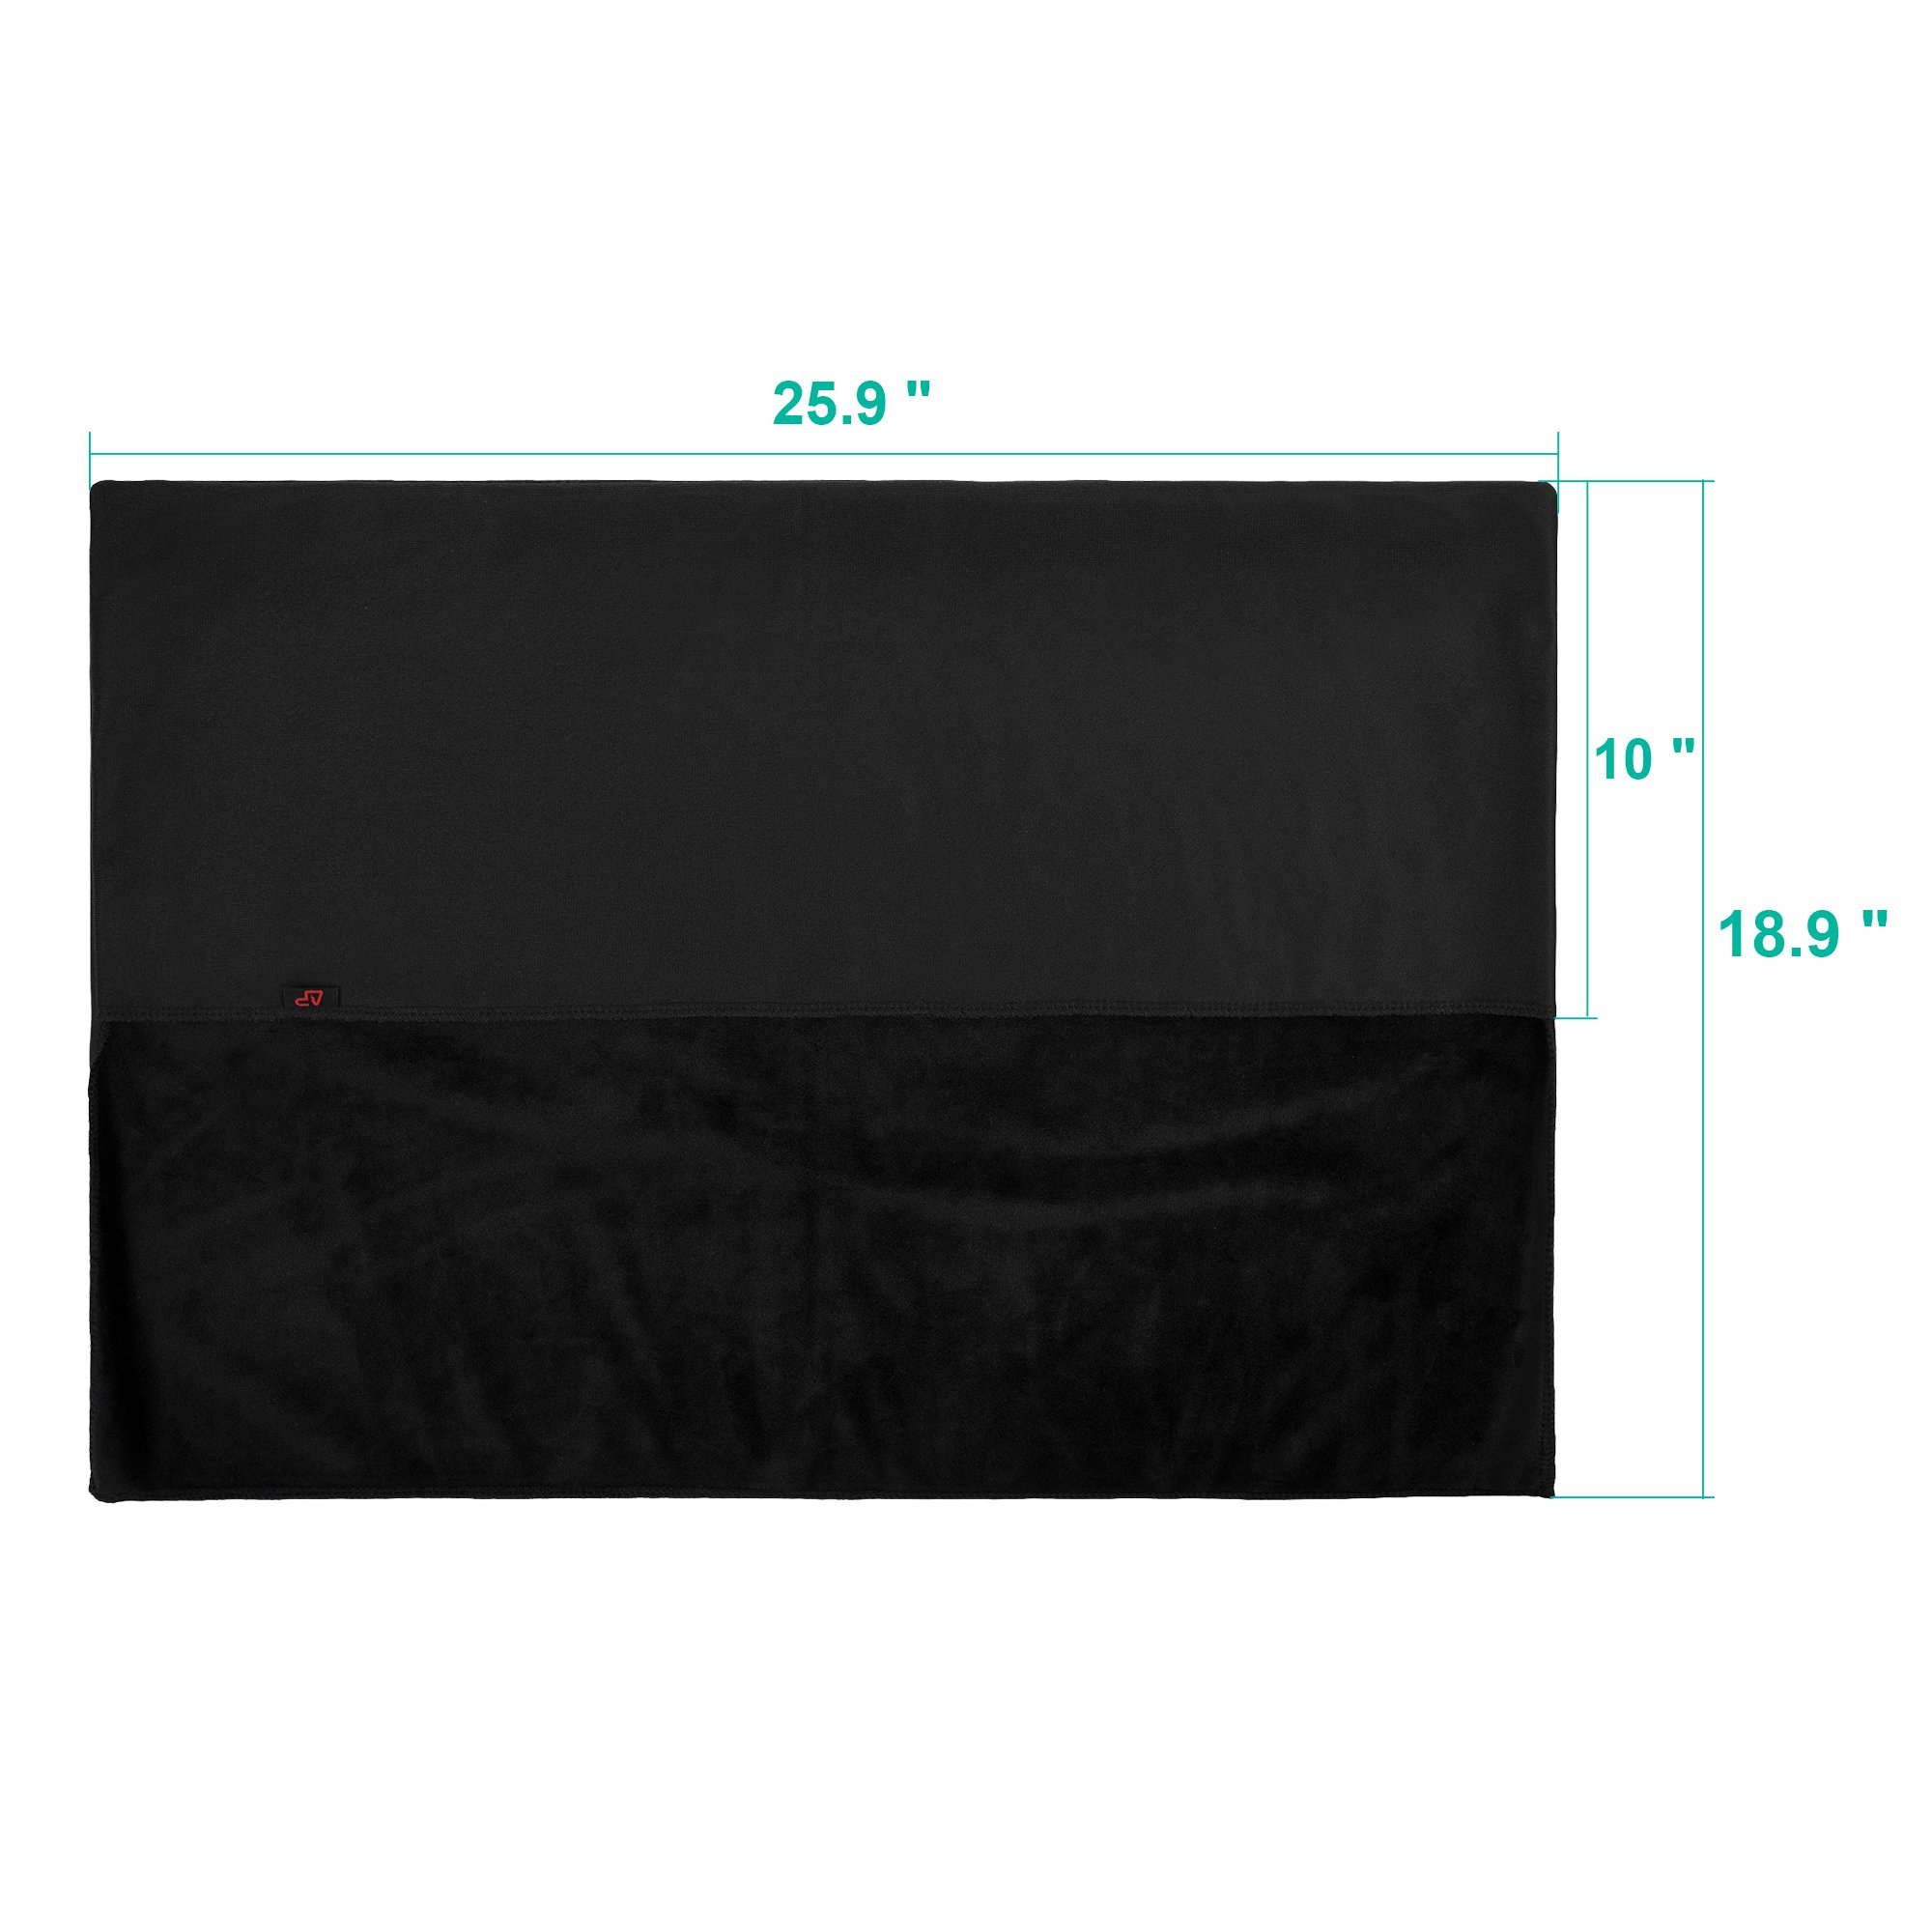 Lightning Power - Premium Protective Dust Screen Cover Sleeve with inner soft lining for Apple iMac (27 Inch, Black) by Lightning Power (Image #3)